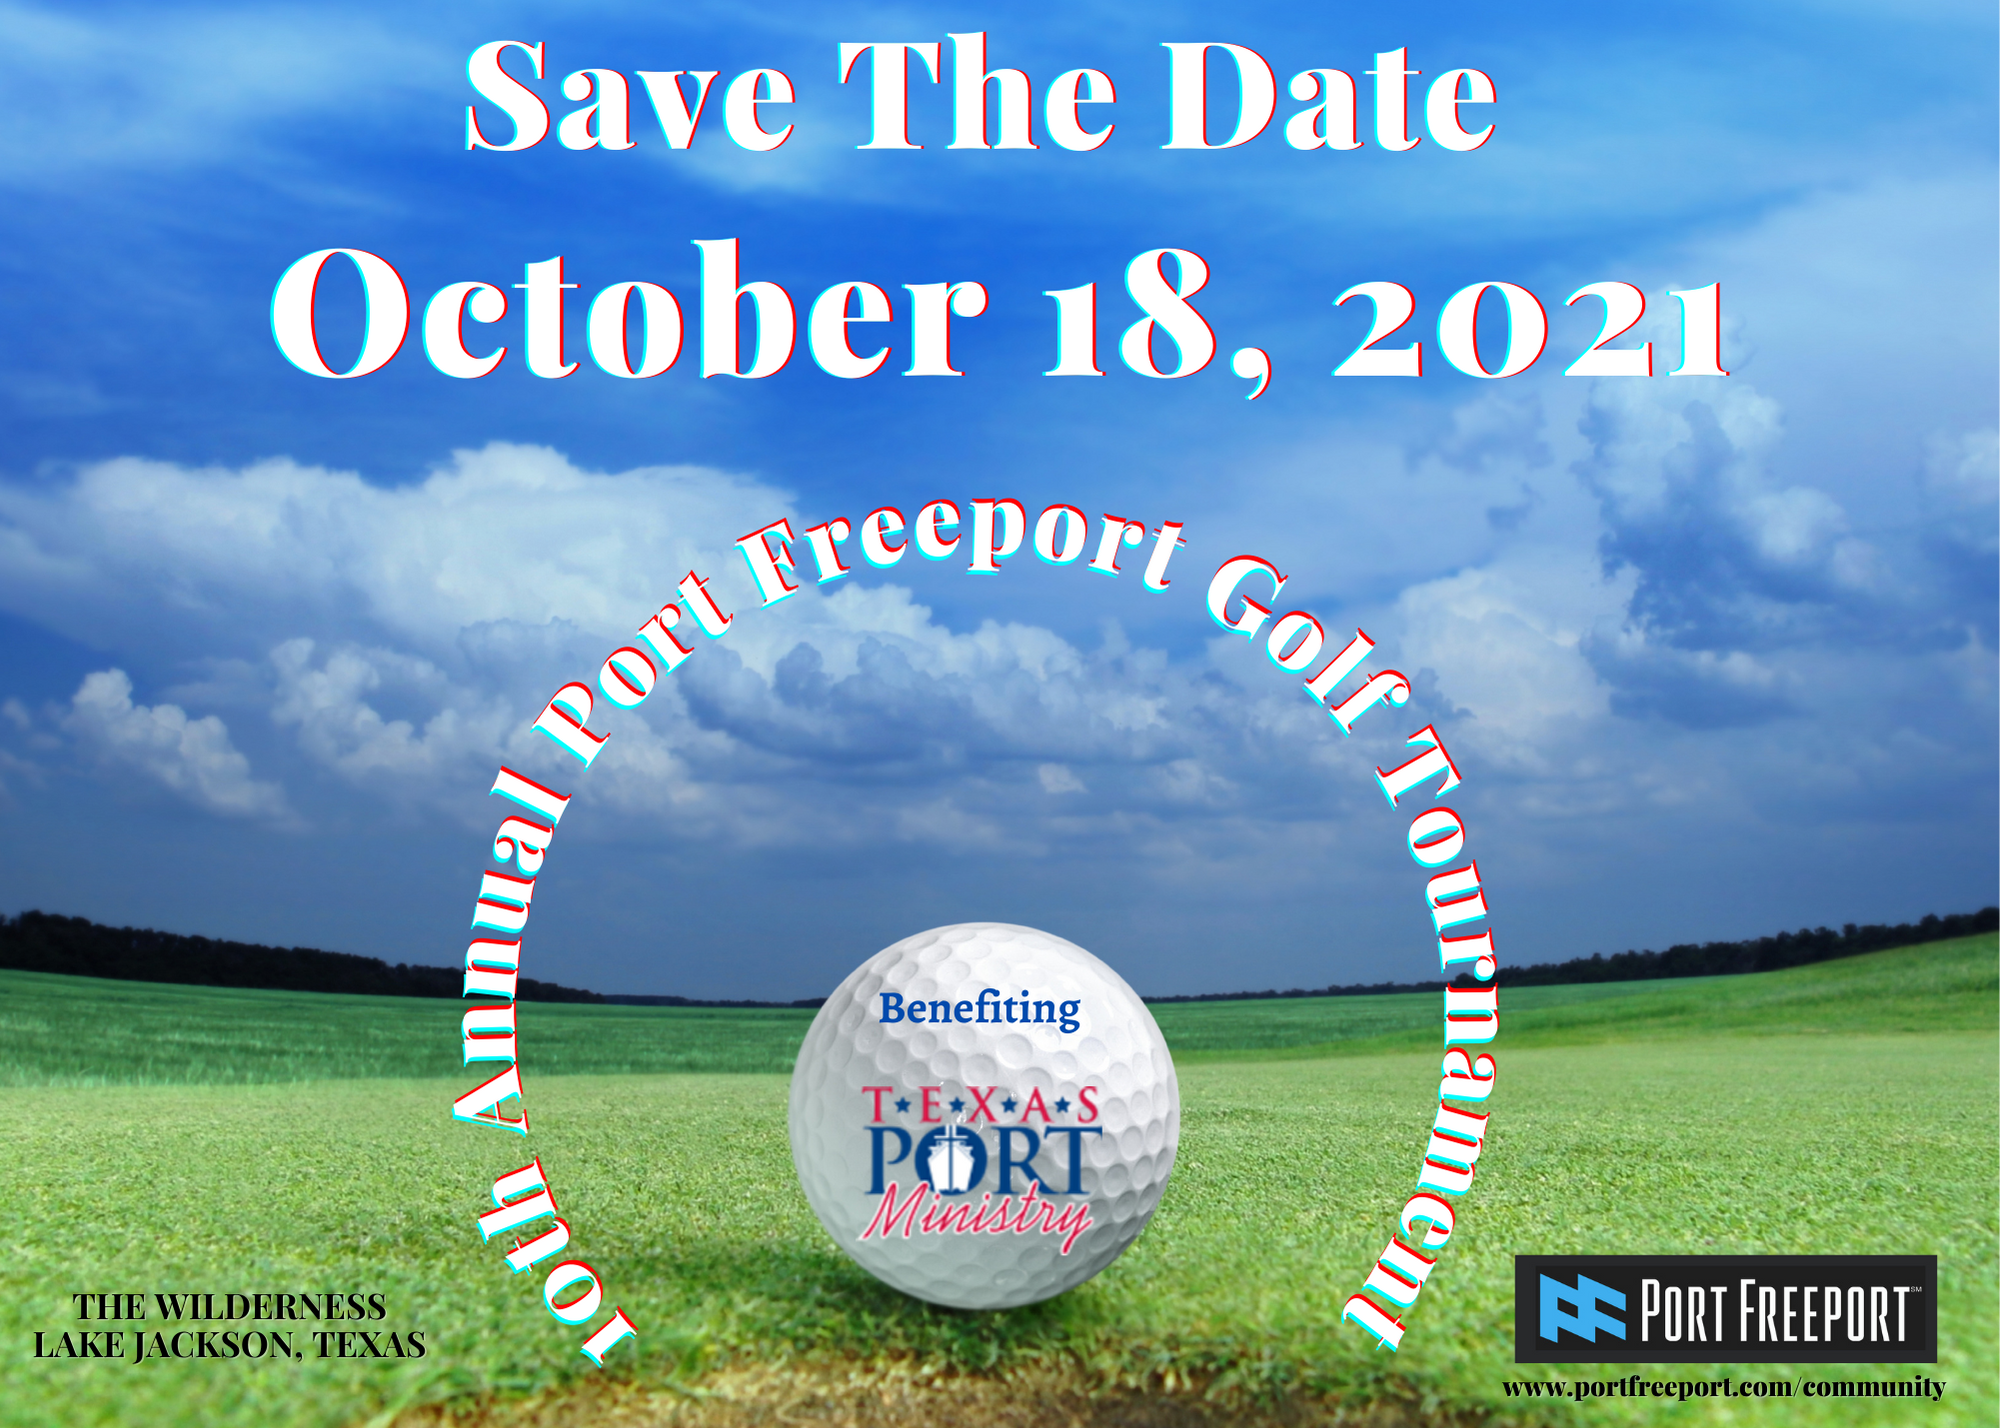 Golf 2021 - Save the date